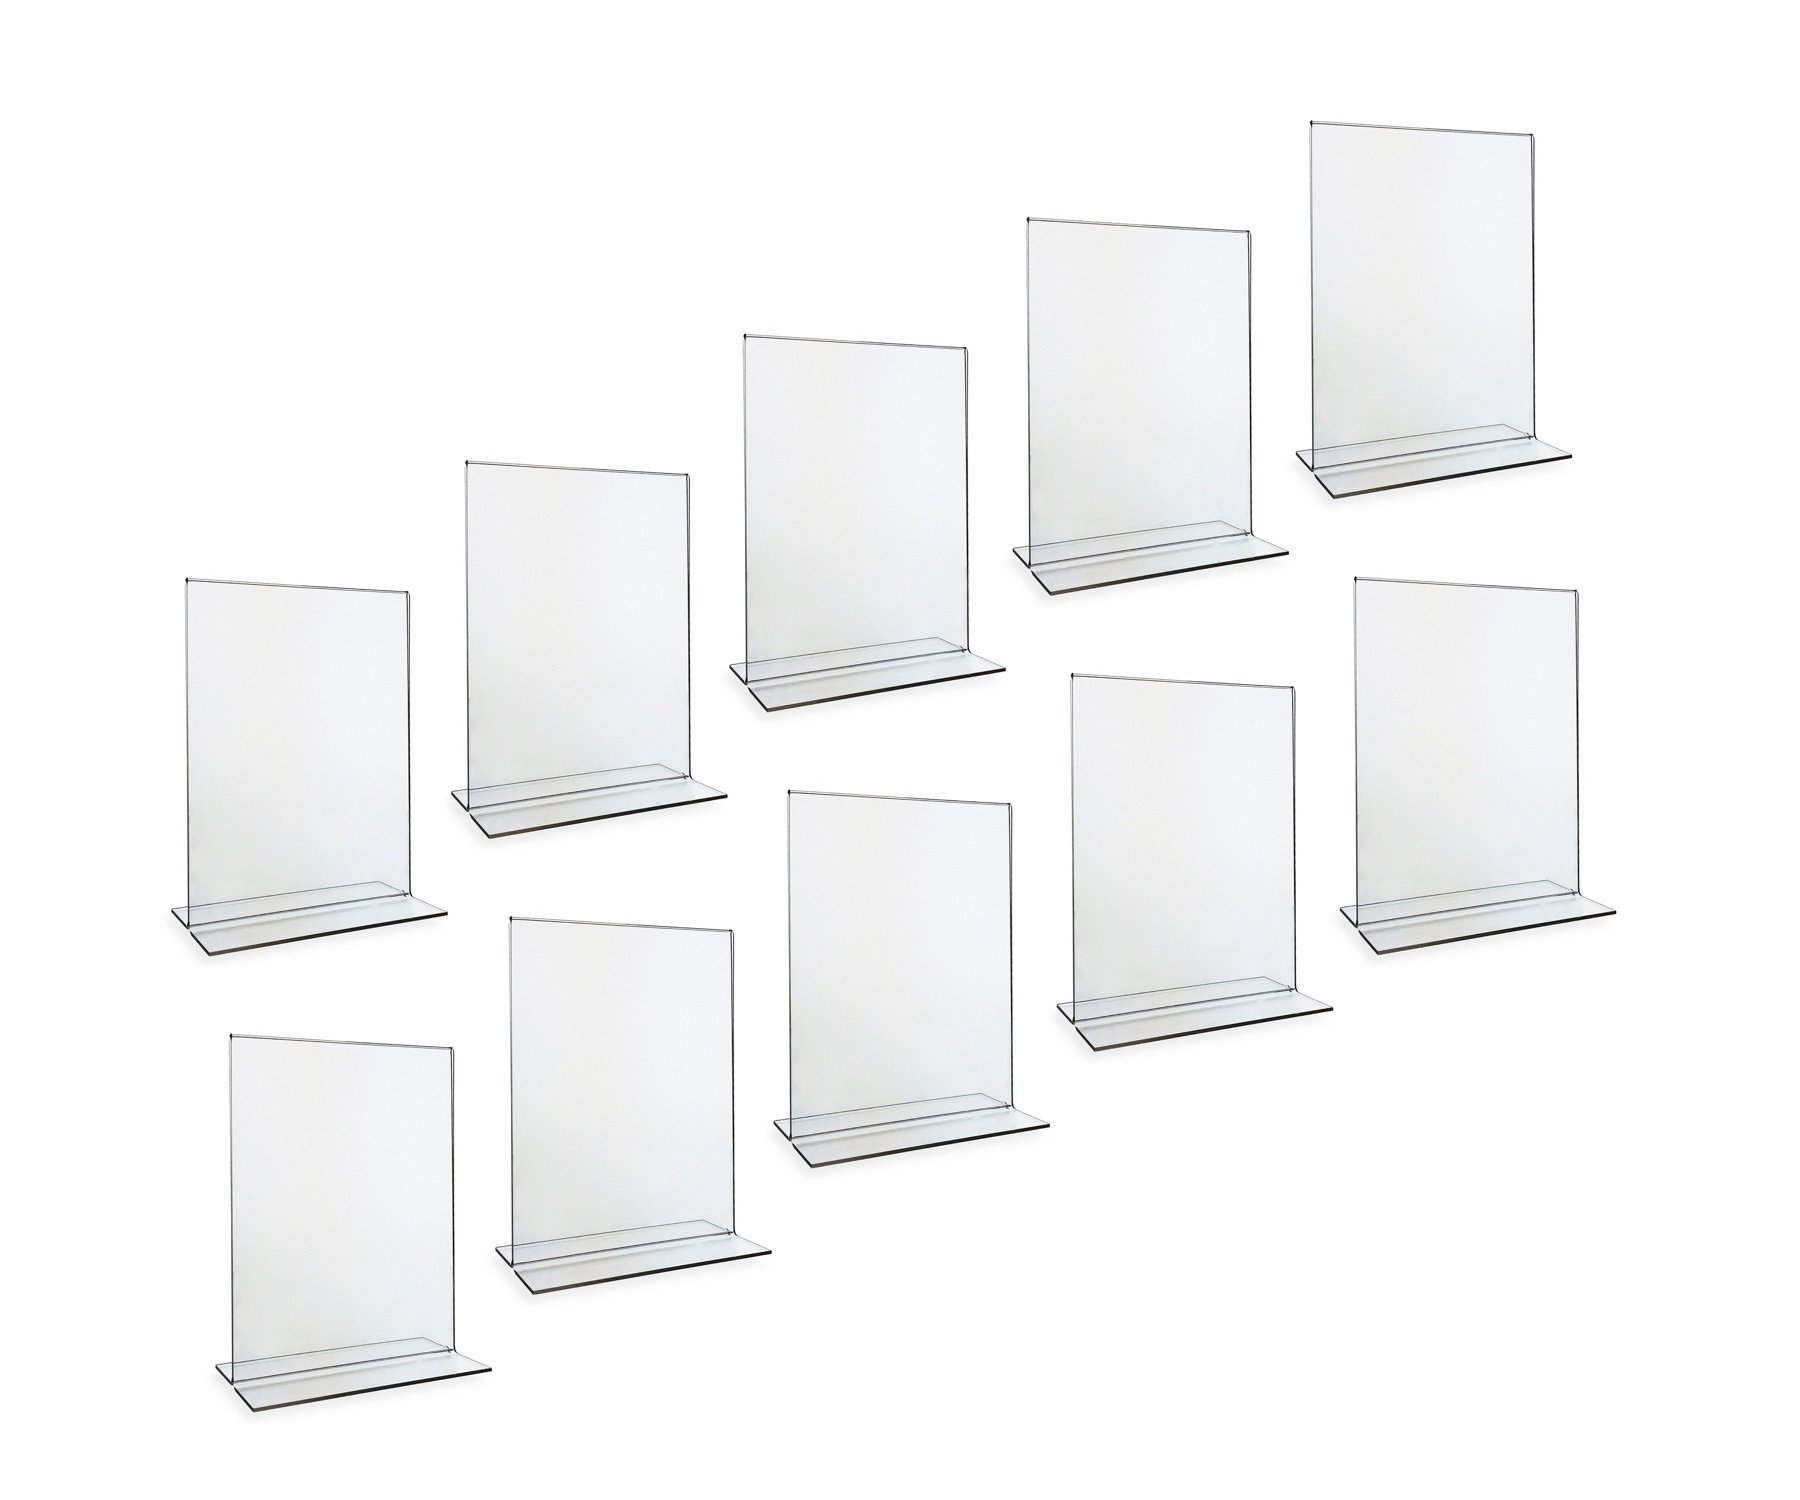 Beryland Acrylic Sign Holder and Menu Holder, 5 x 7 inches, 10-Pack of Sign Holders (Box of 10)